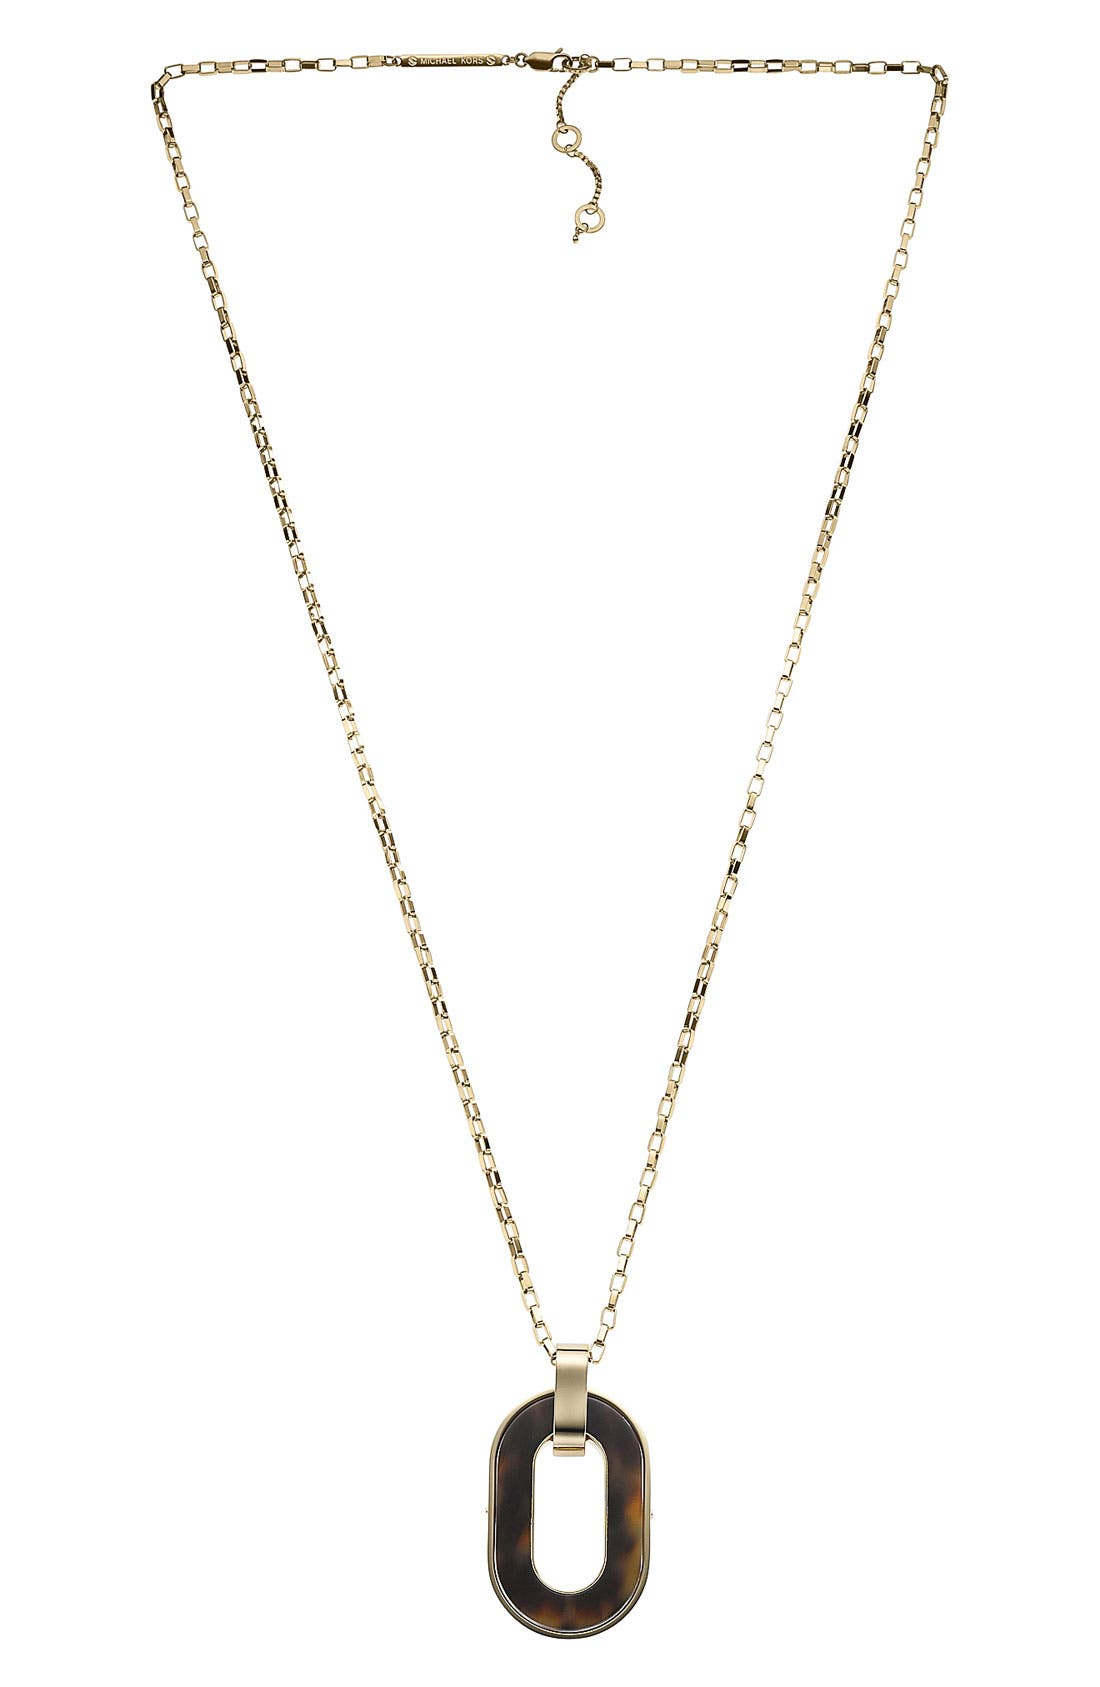 Alternate Image 1 Selected - Michael Kors 'Jet Set' Long Pendant Necklace